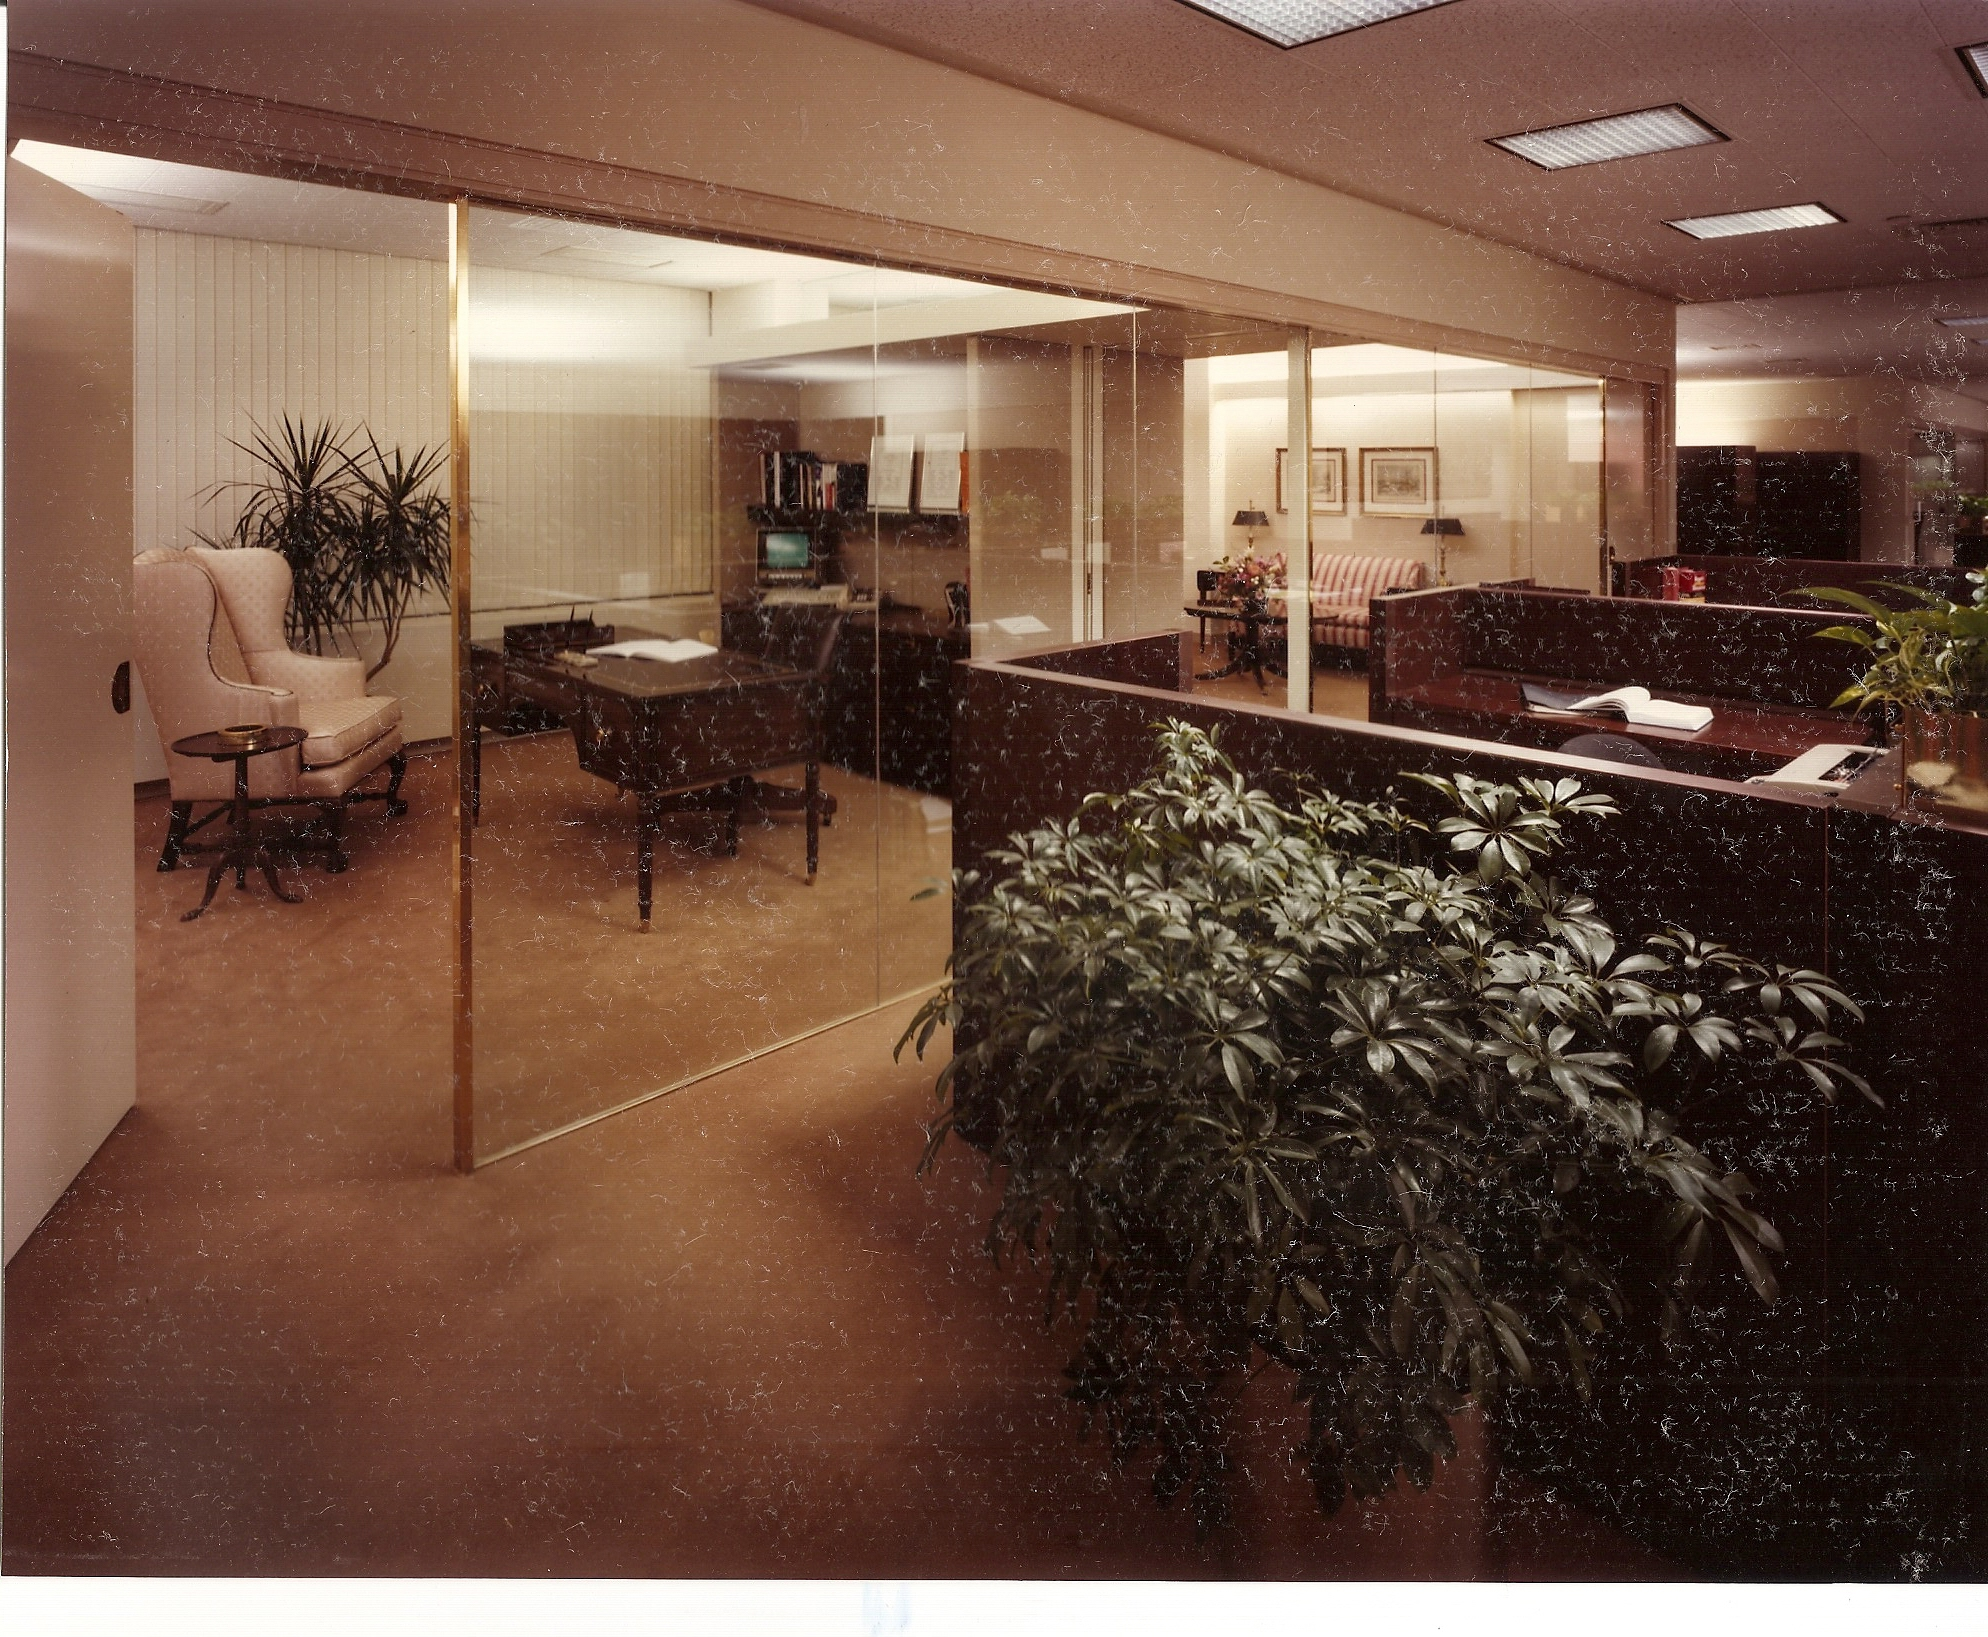 Associate offices